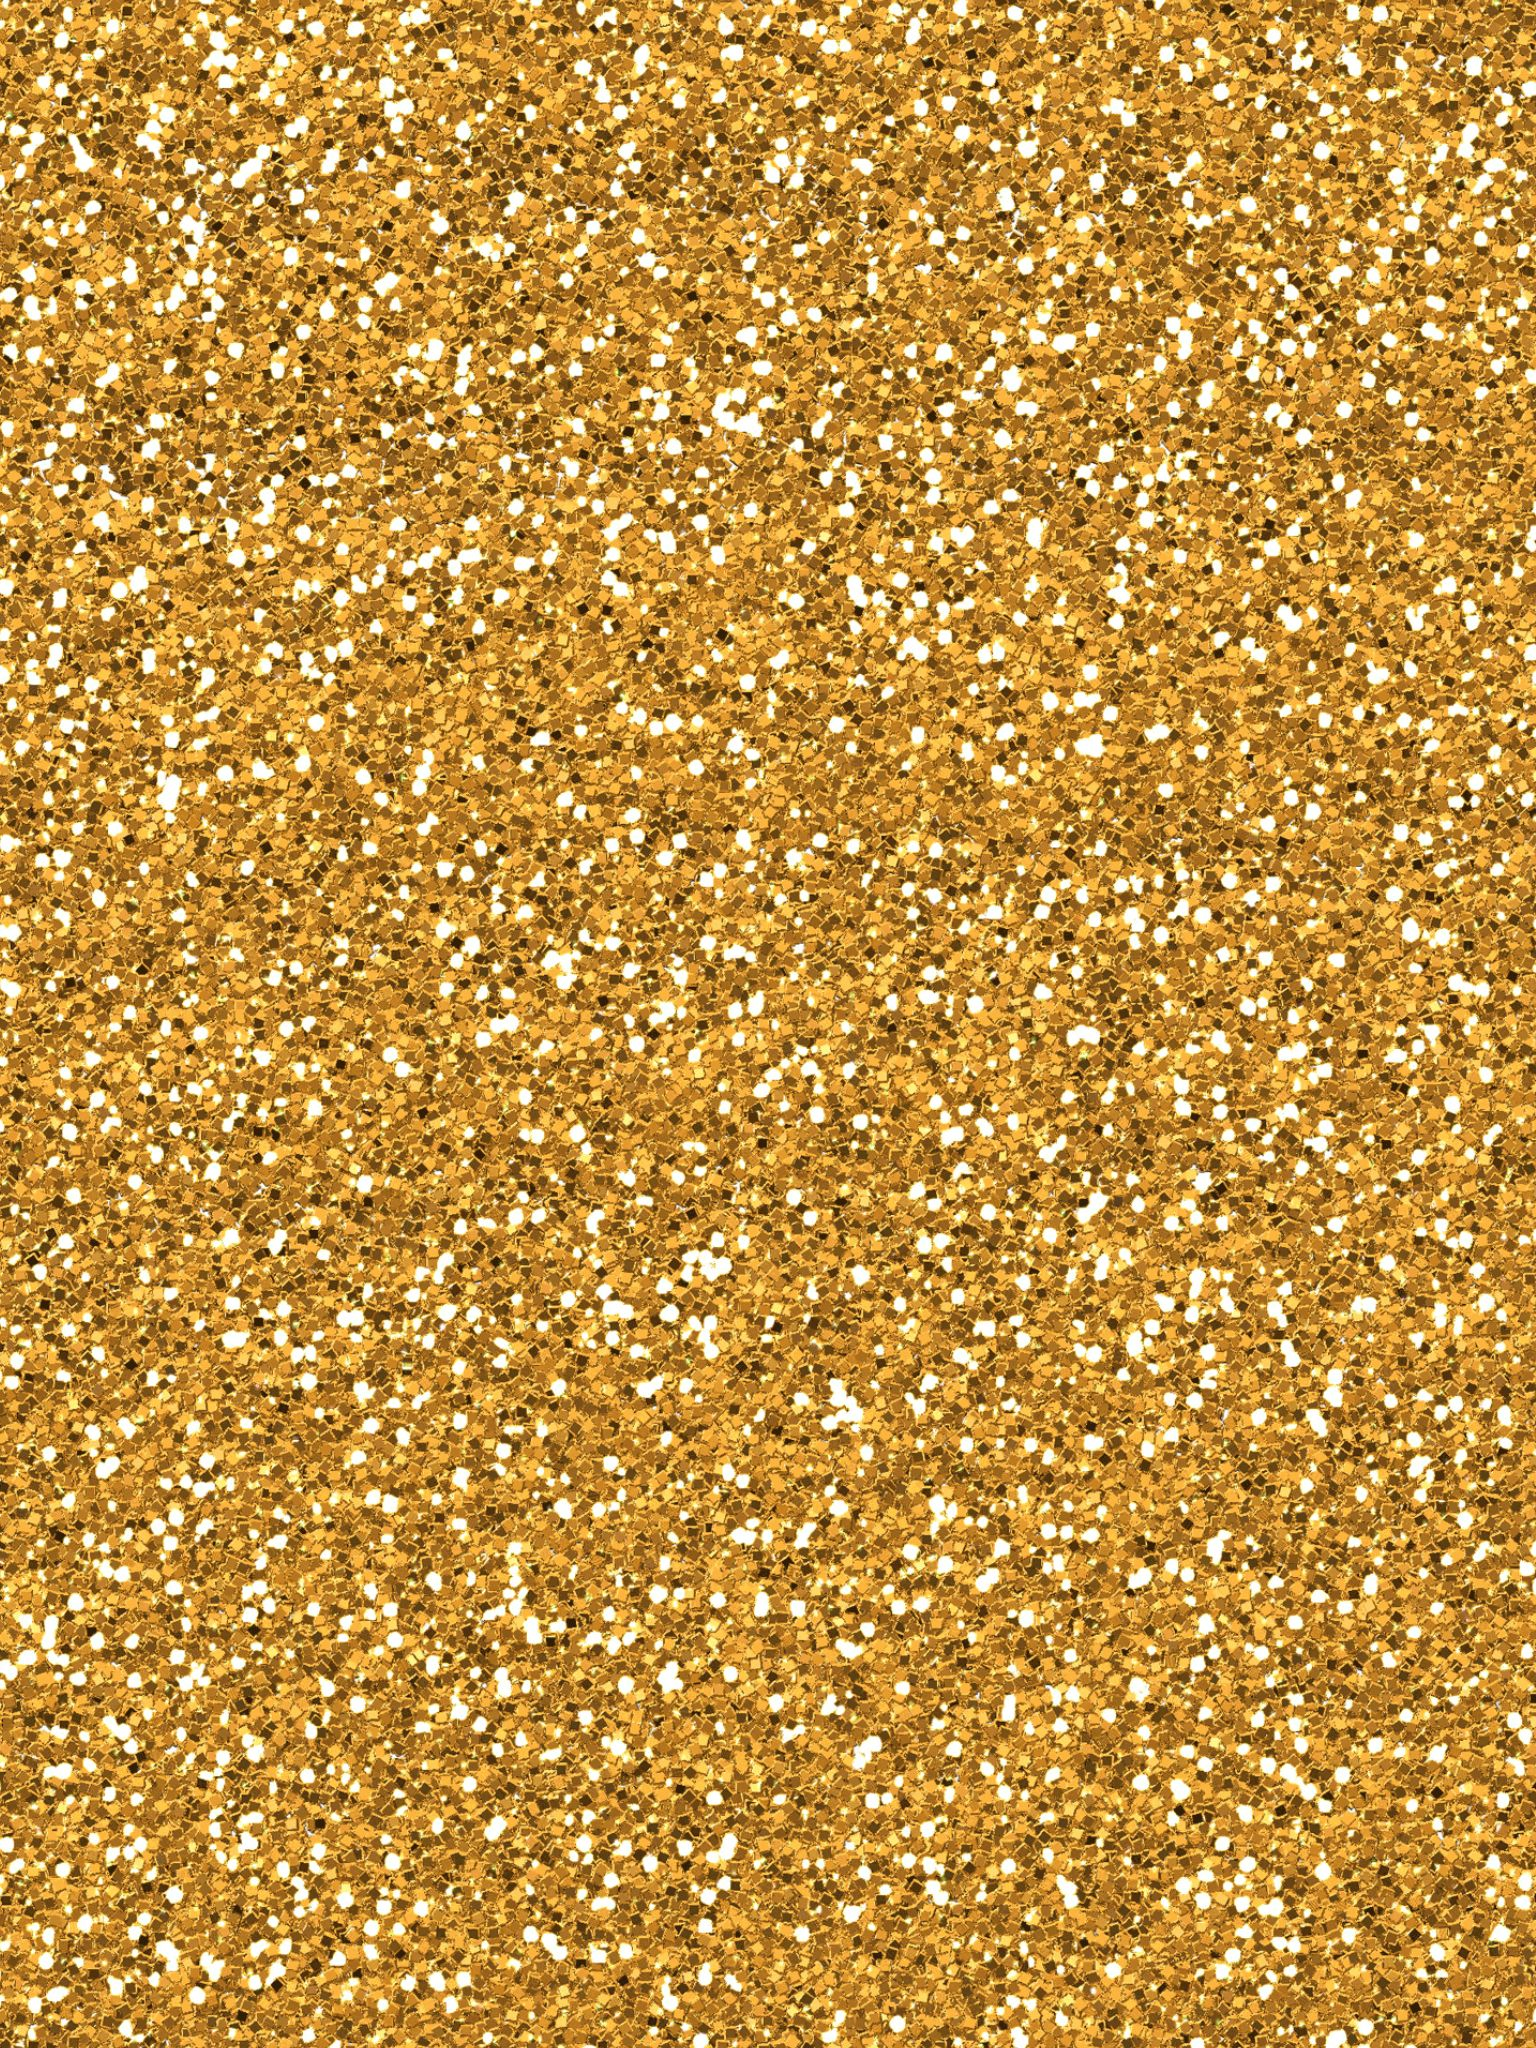 Gold sparkles iphone walpaper iwalpaper pinterest for Wallpaper glitter home